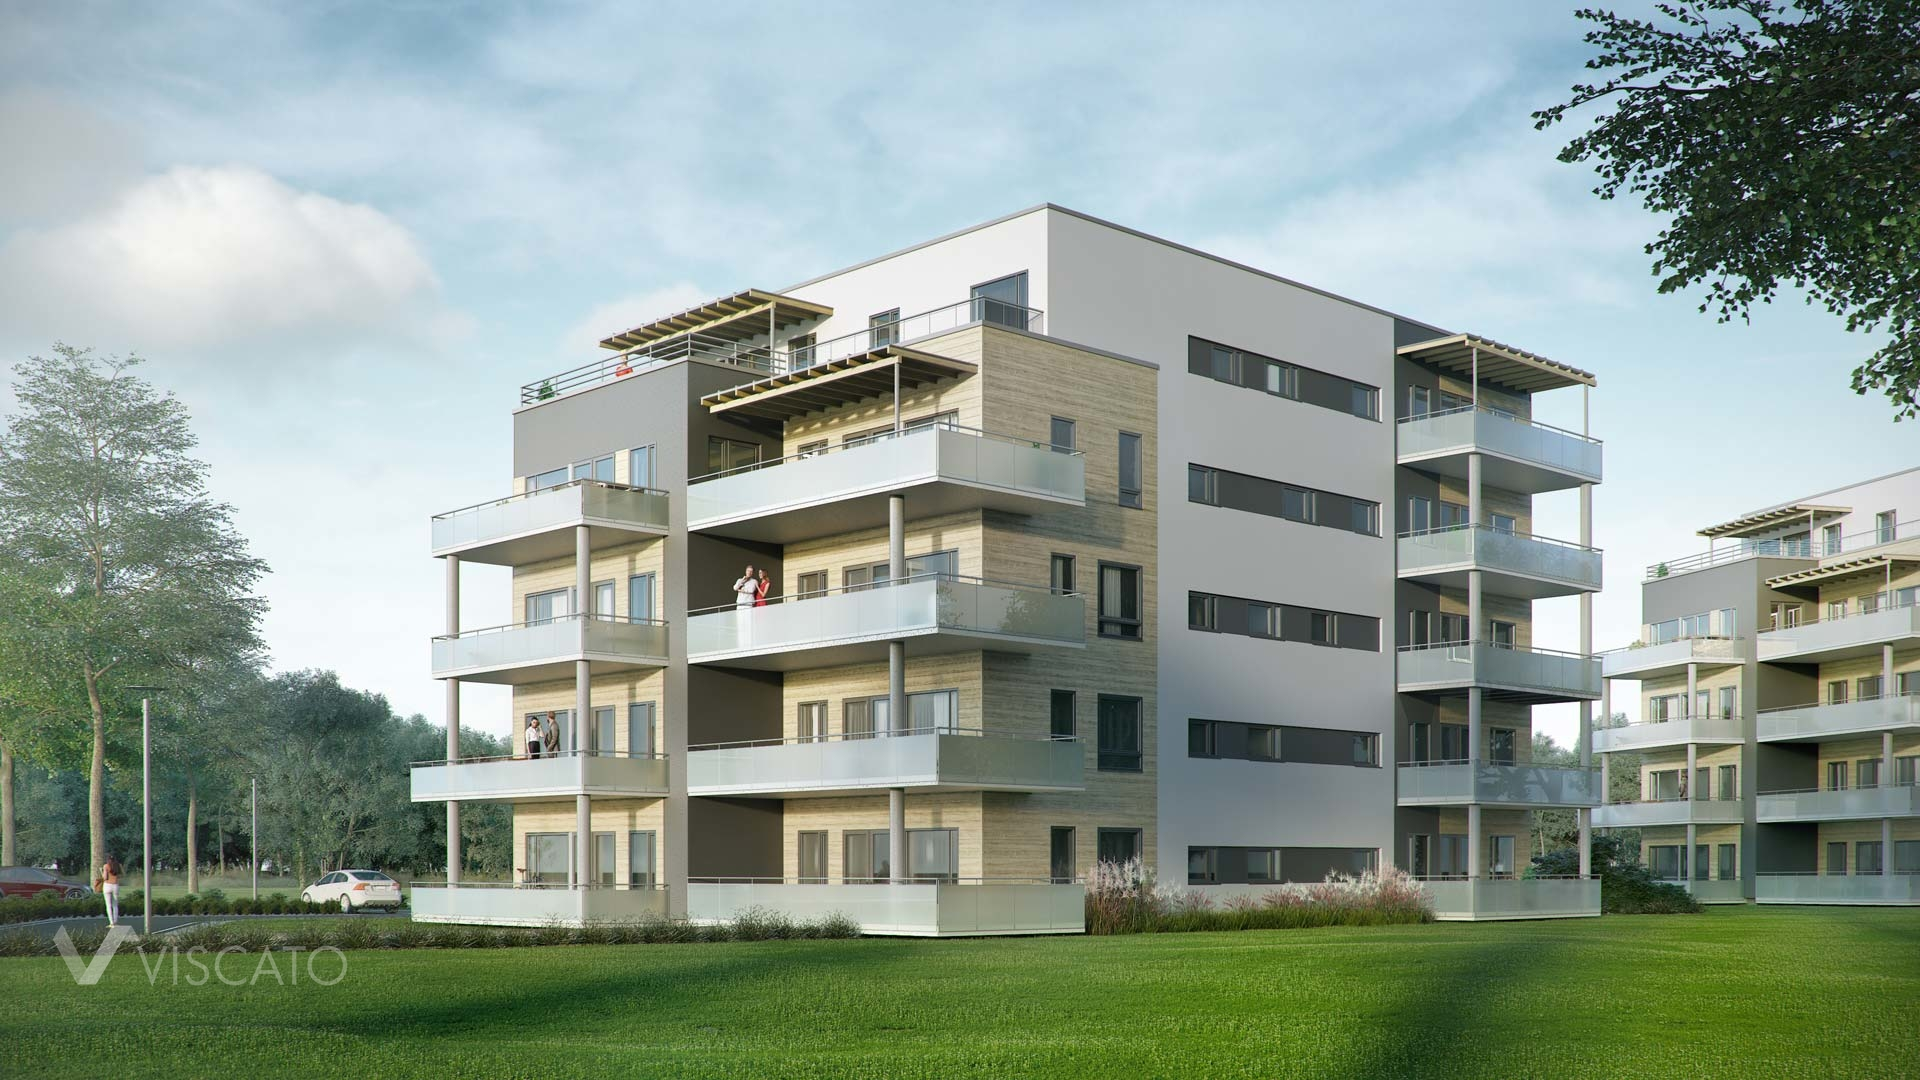 3D visualisation of a block of flats in Norway